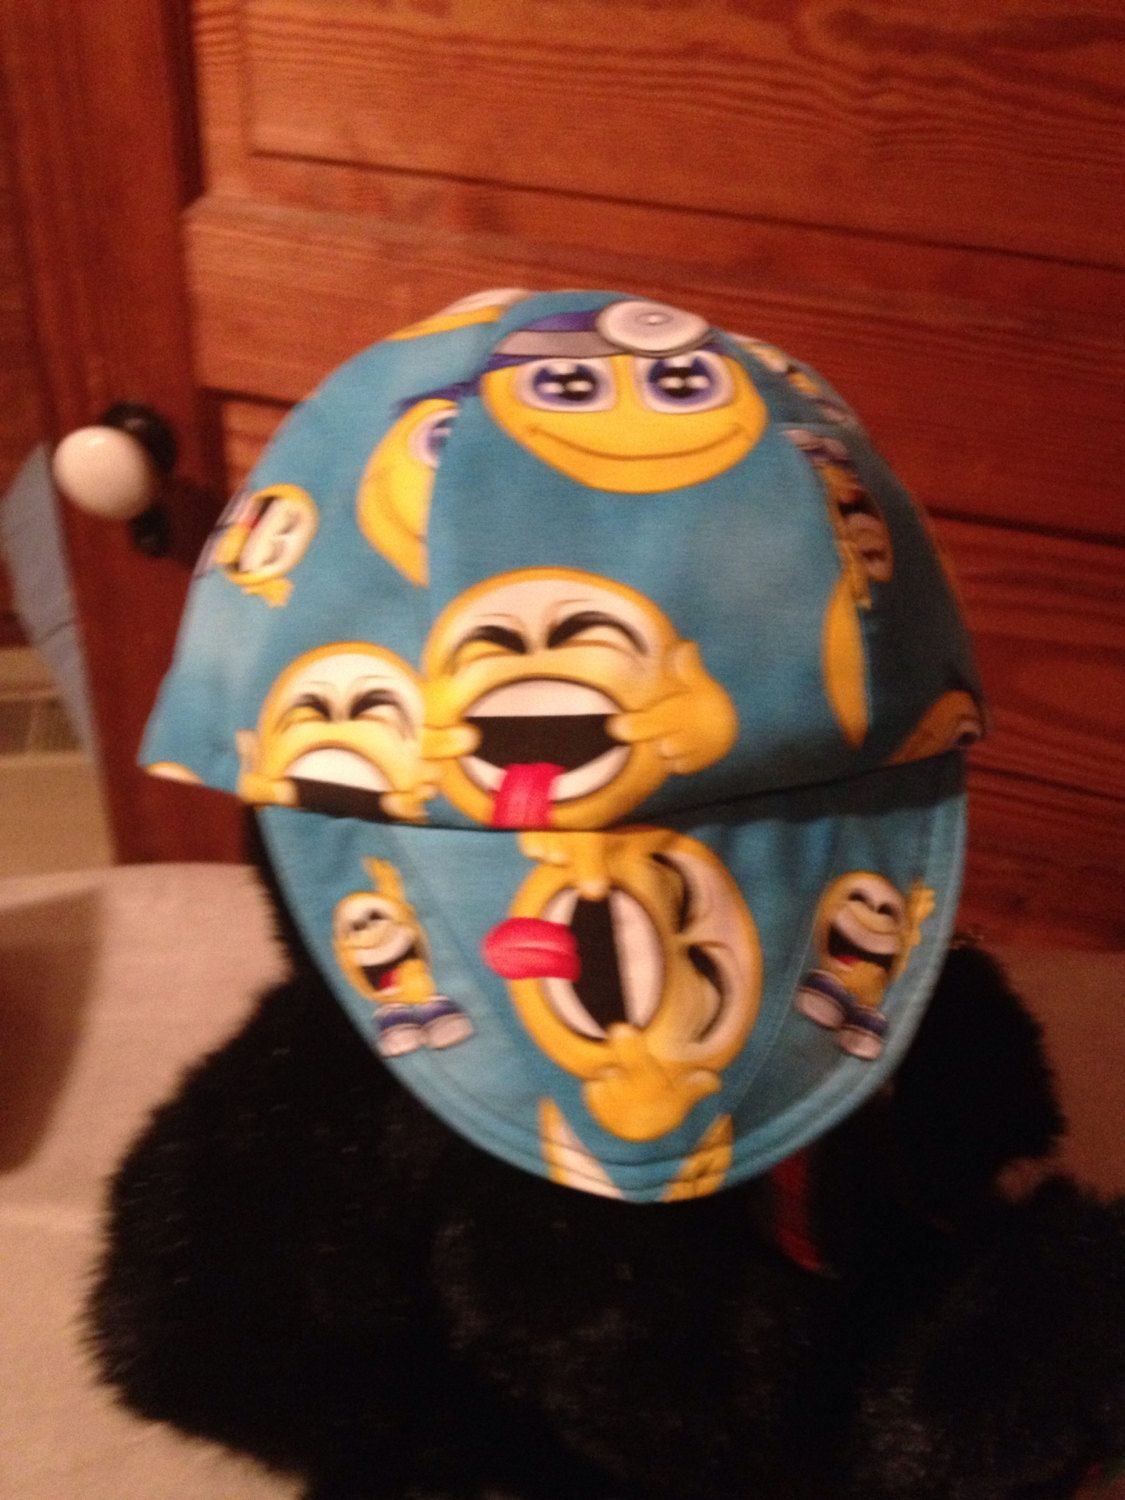 WELDING CAP MADE WITH Smiley faces